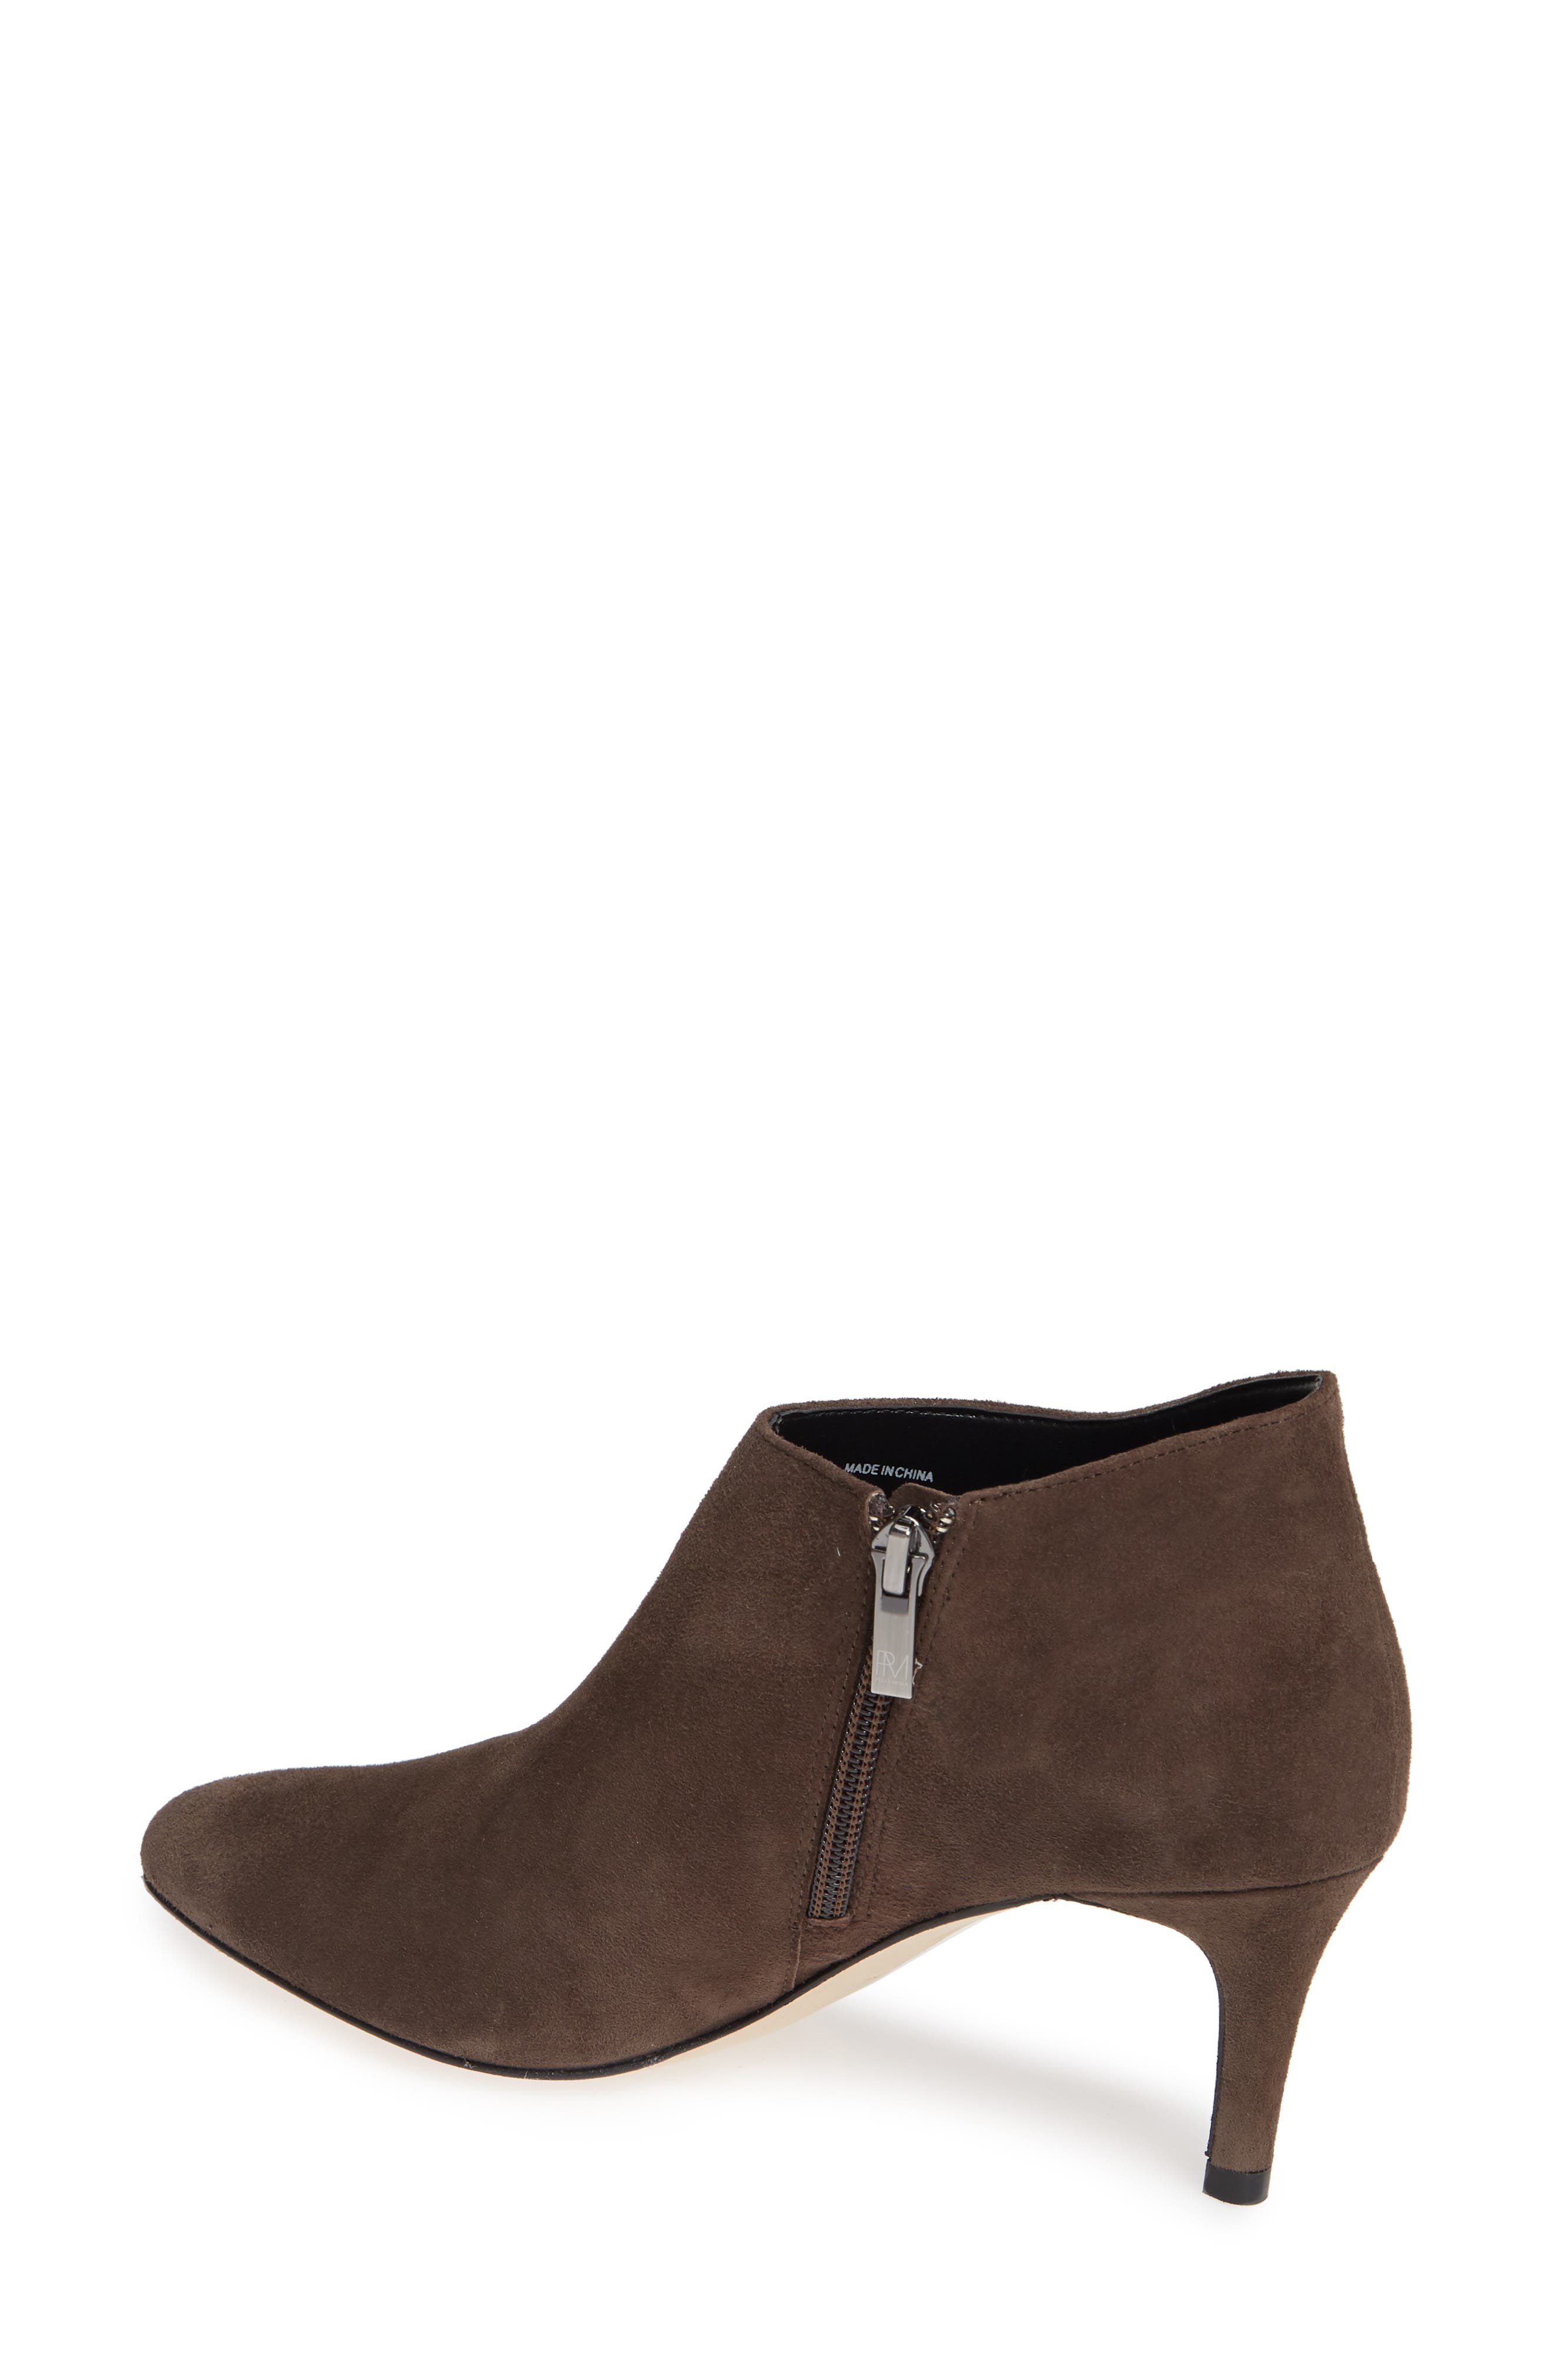 'Yelm' Almond Toe Bootie,                             Alternate thumbnail 2, color,                             MINK SUEDE